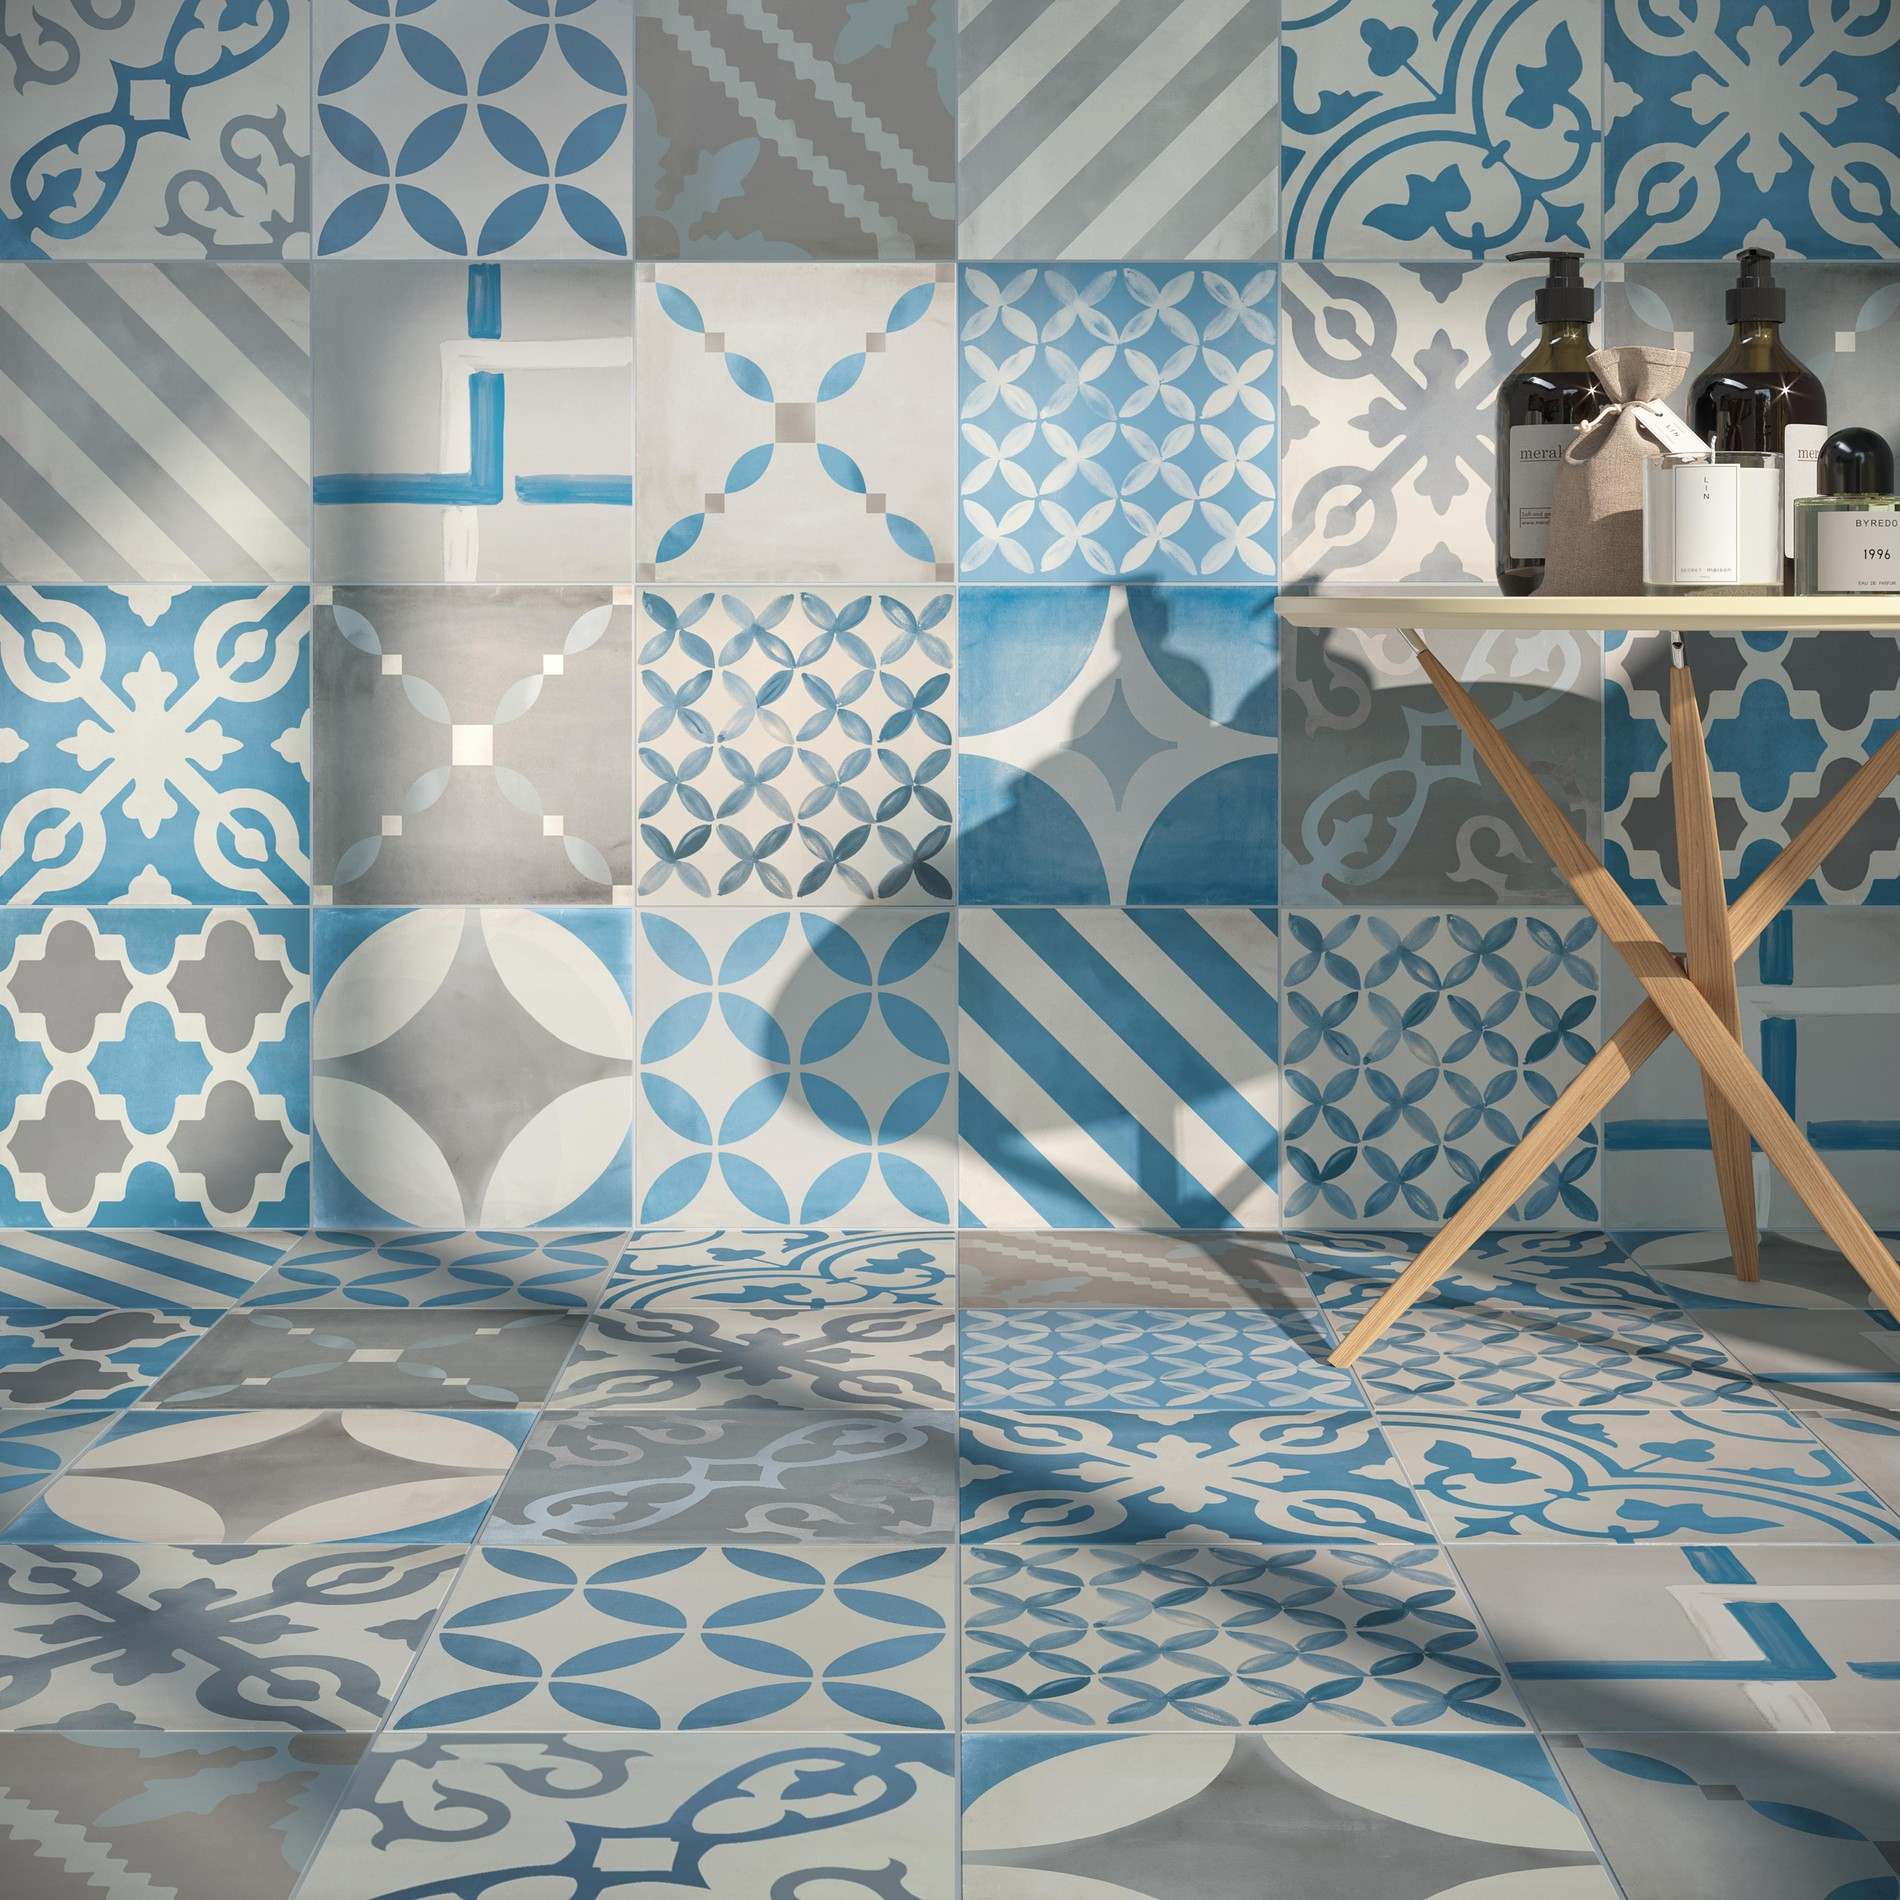 Concrete look porcelain tiles